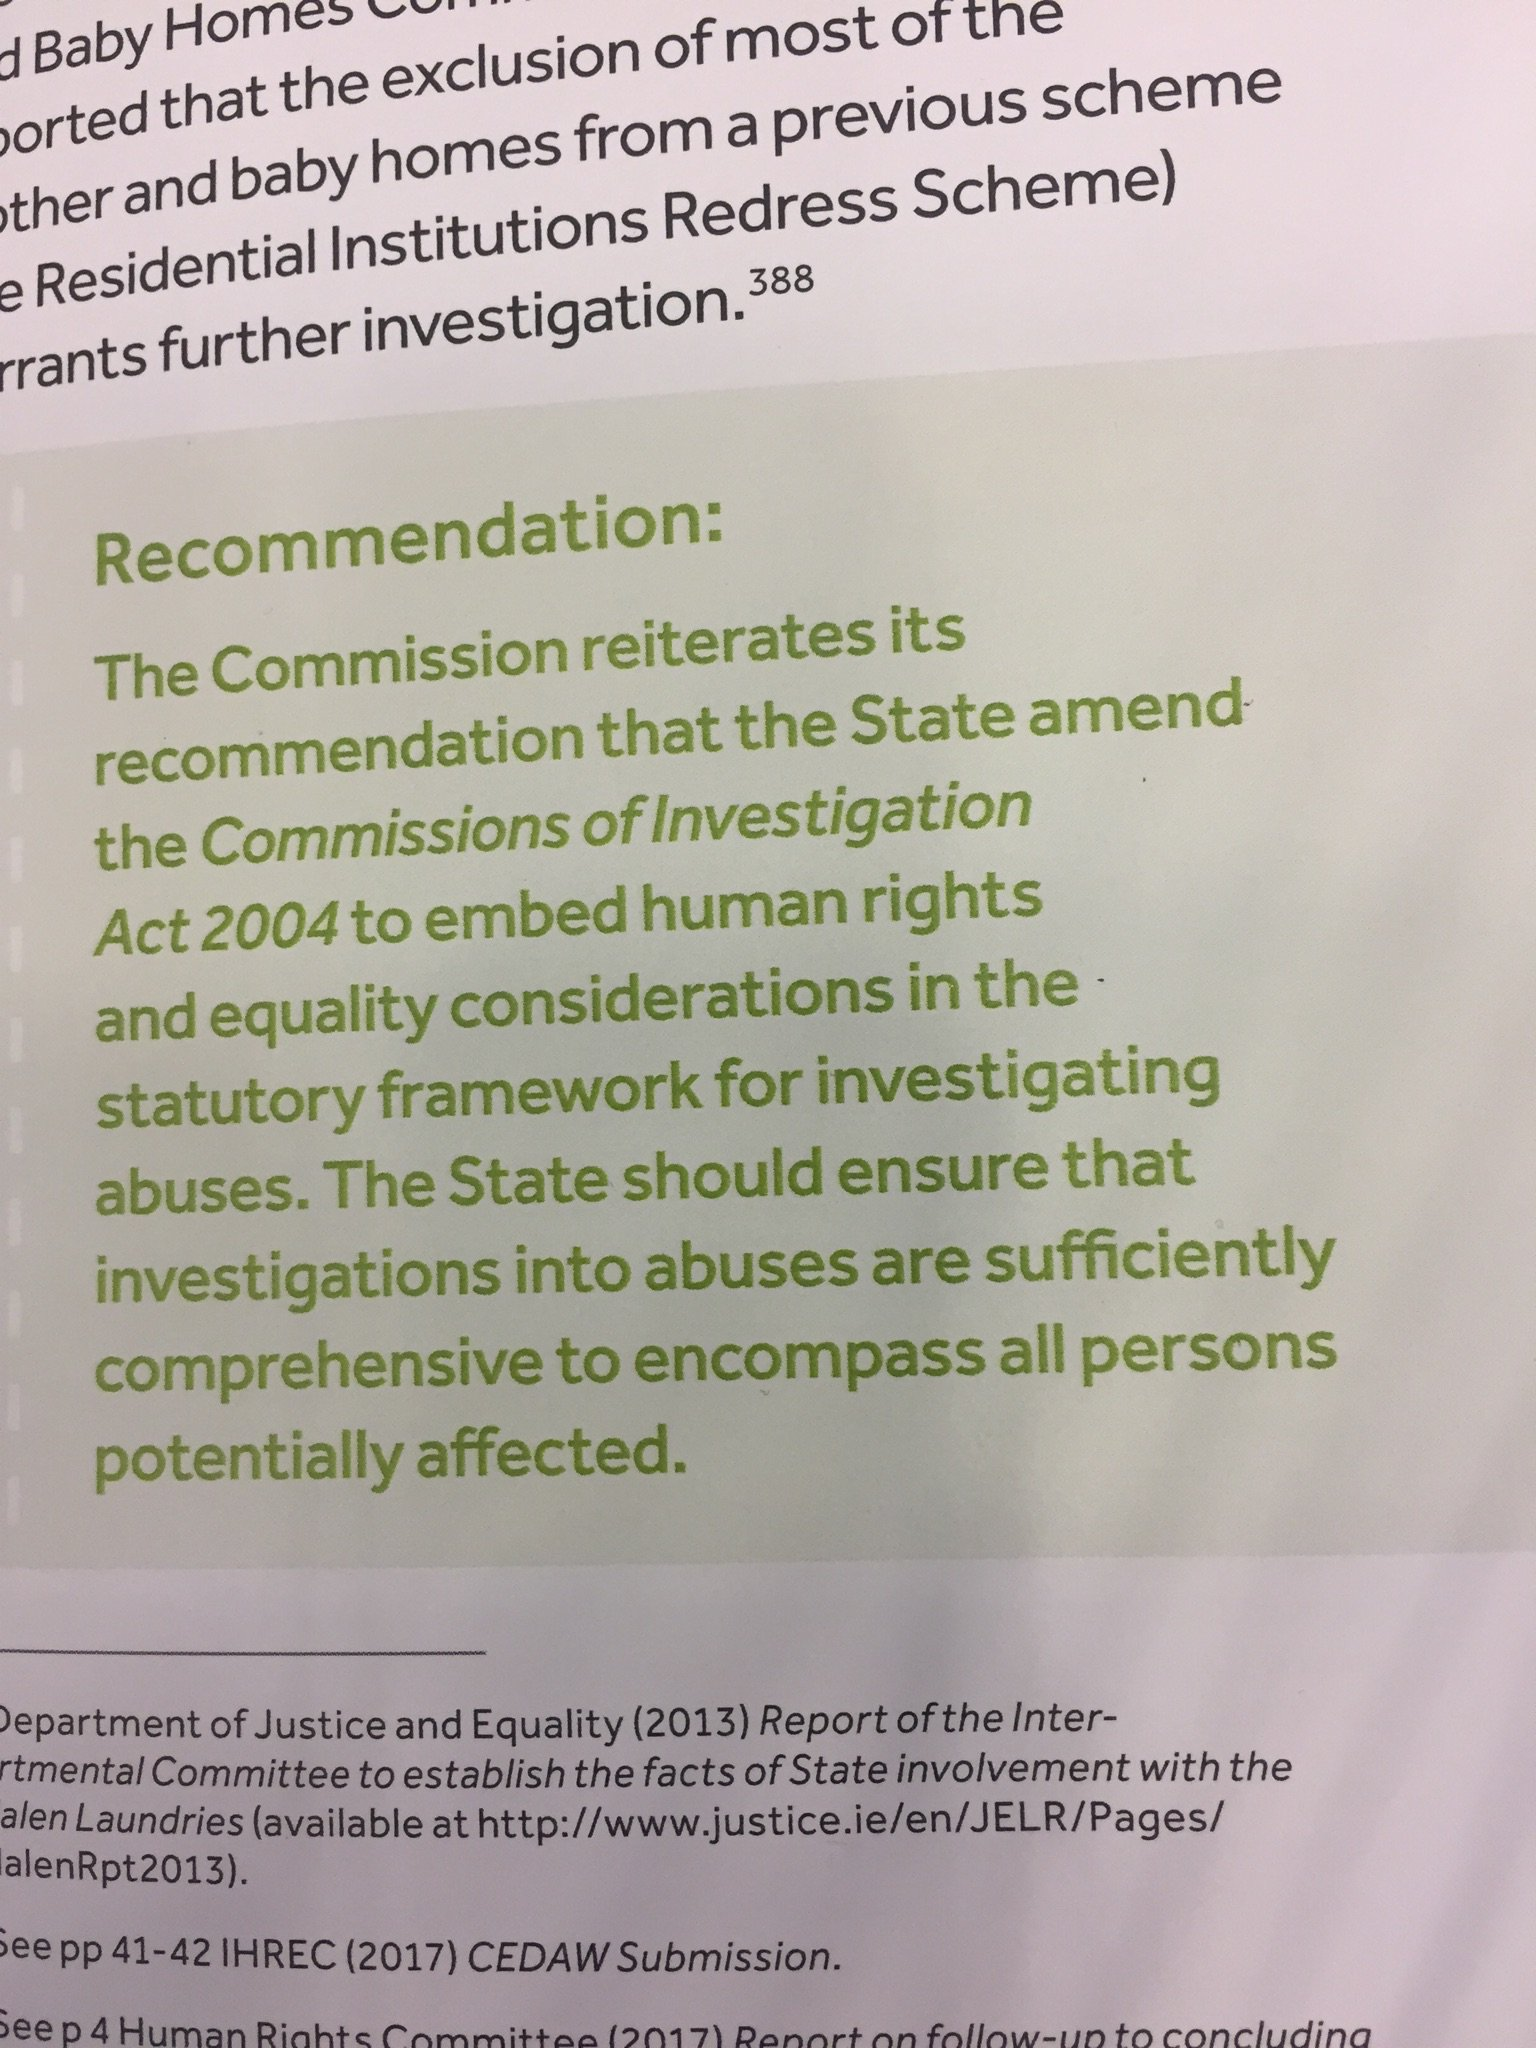 .@_IHREC has made a specific recommendation on amending the 2004 Commission of Investigation Act #uncat #uncat61 https://t.co/NyEevBwyTP